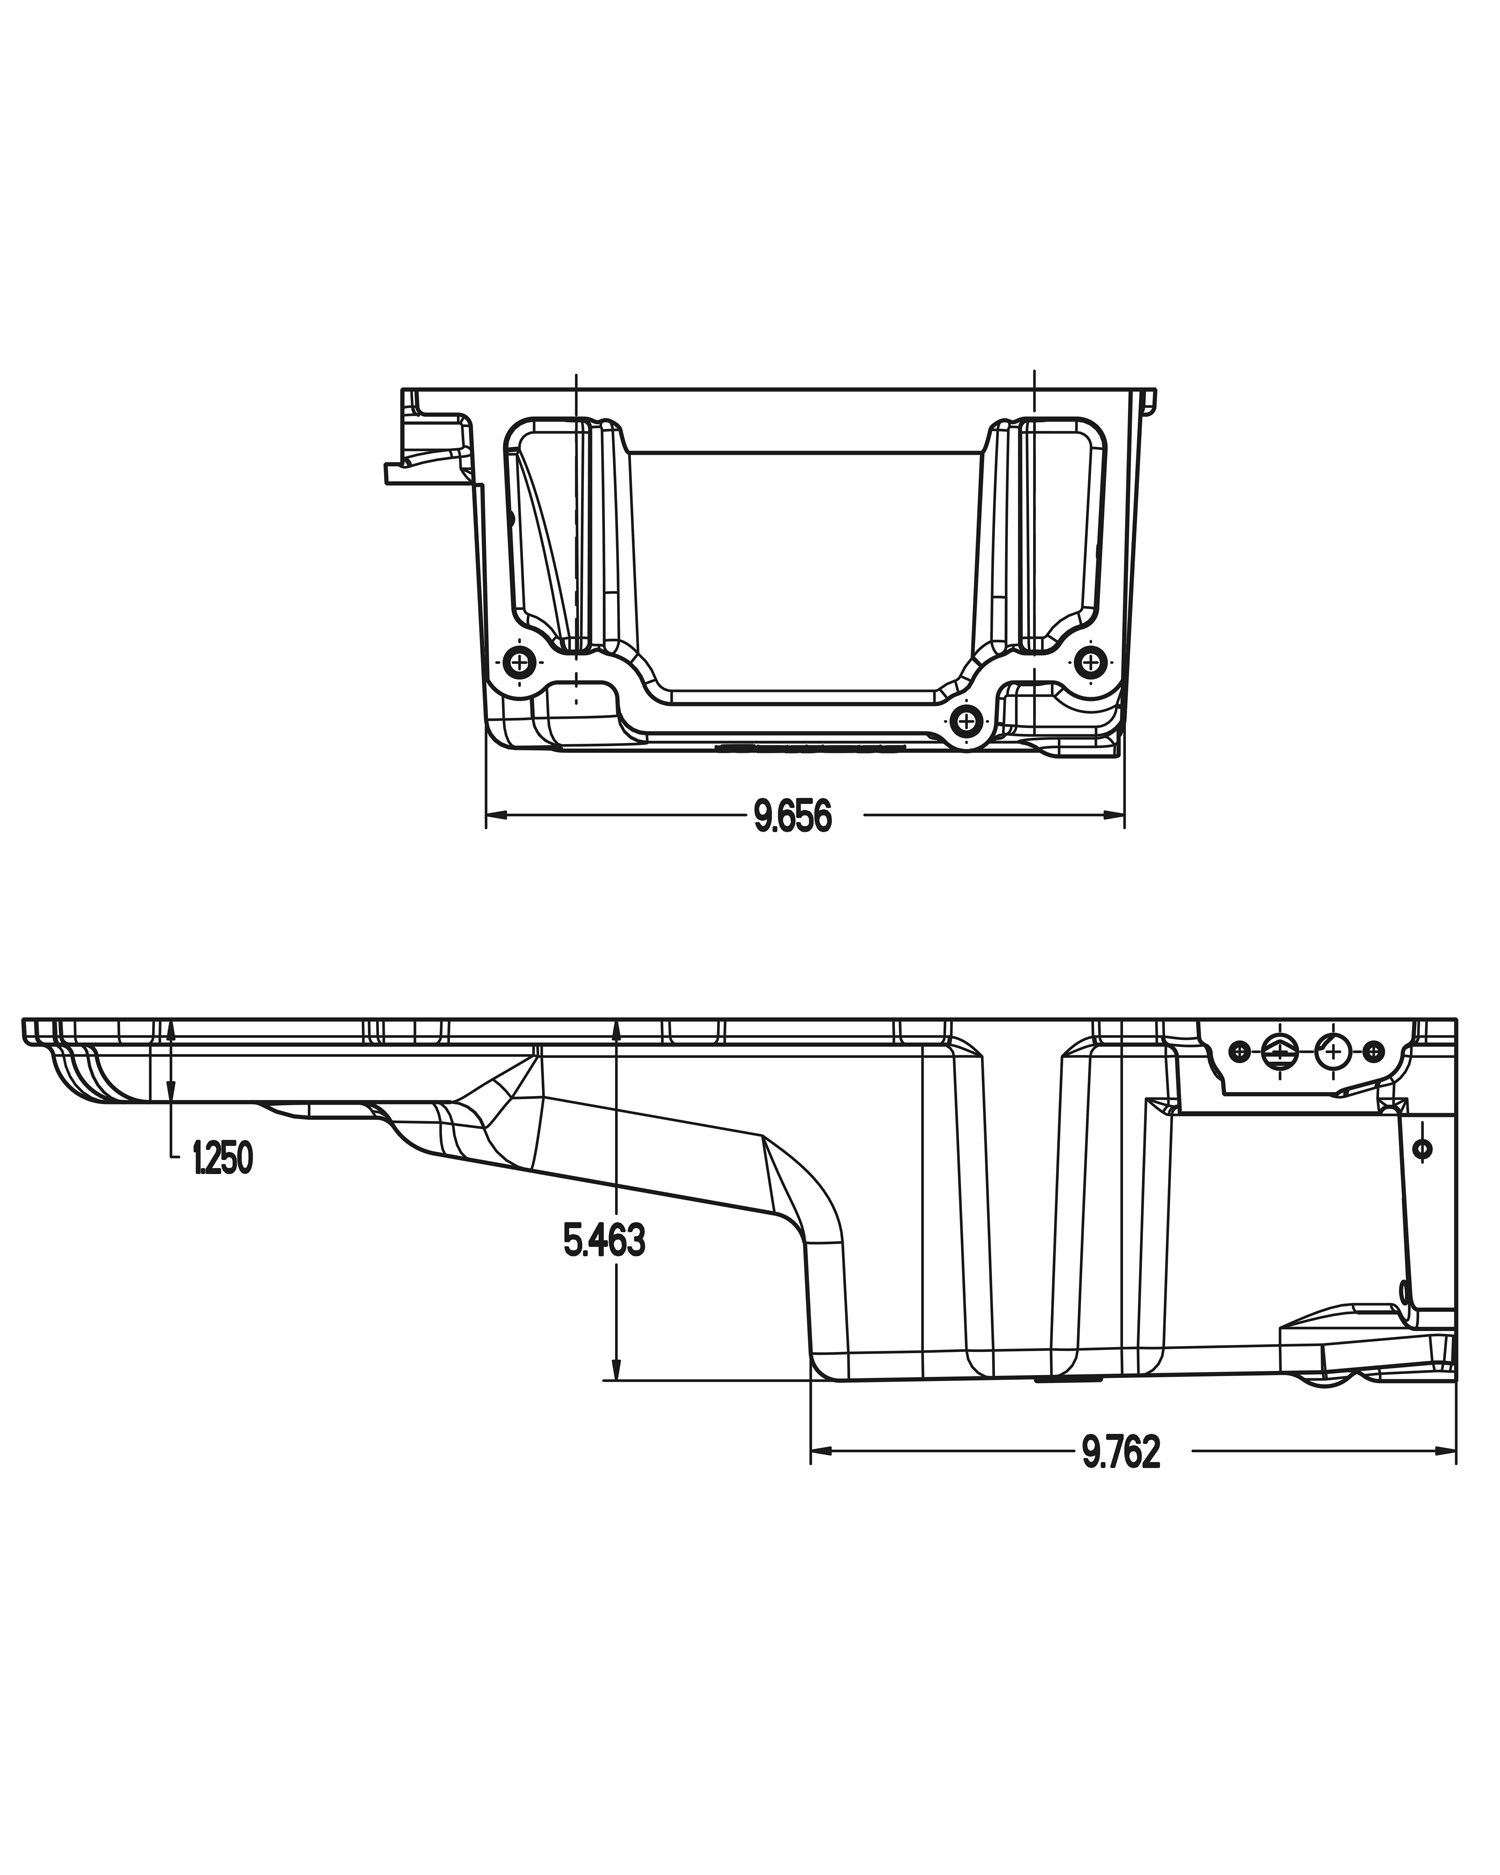 Gm Ls Retro Fit Oil Pan Additional Front Clearance